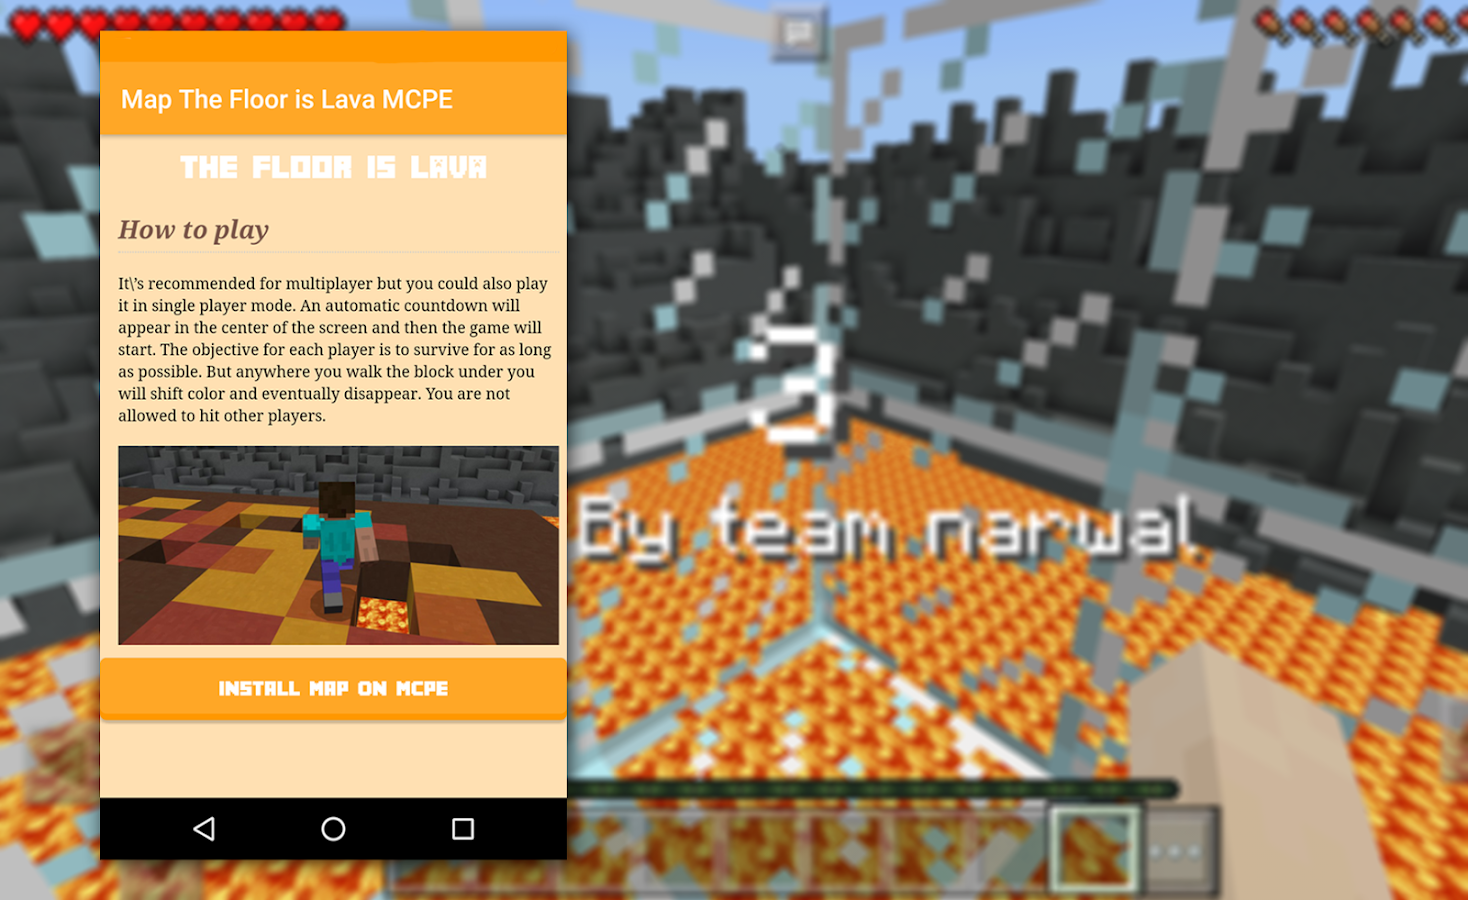 Karte der boden ist lava f r mcpe android apps download for Boden ist lava